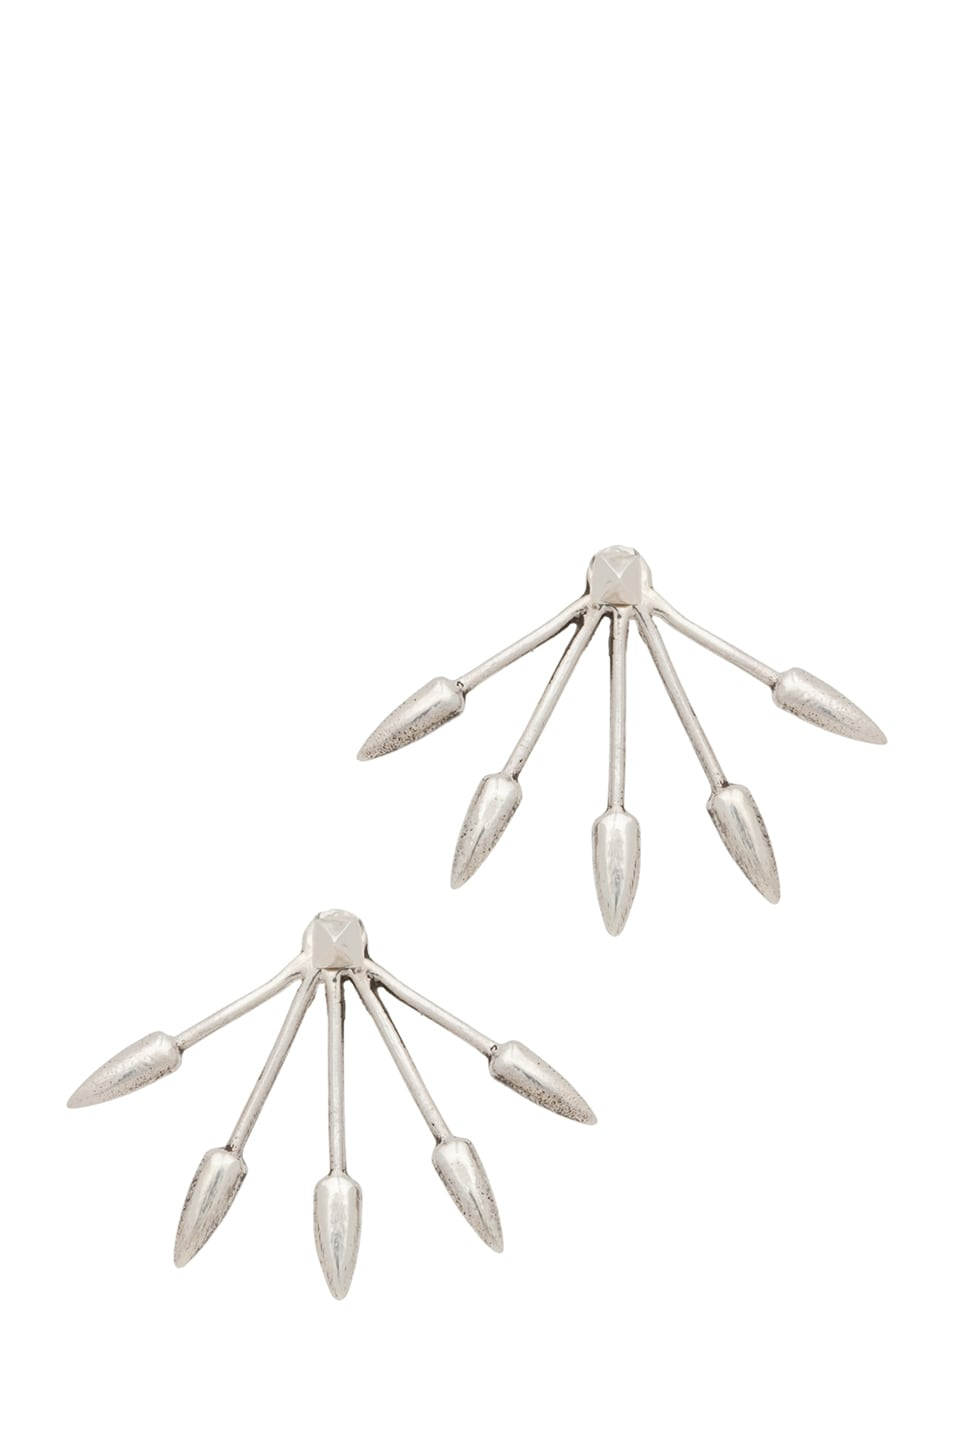 Pamela Love Five Spike Stud Earrings in Sterling Silver